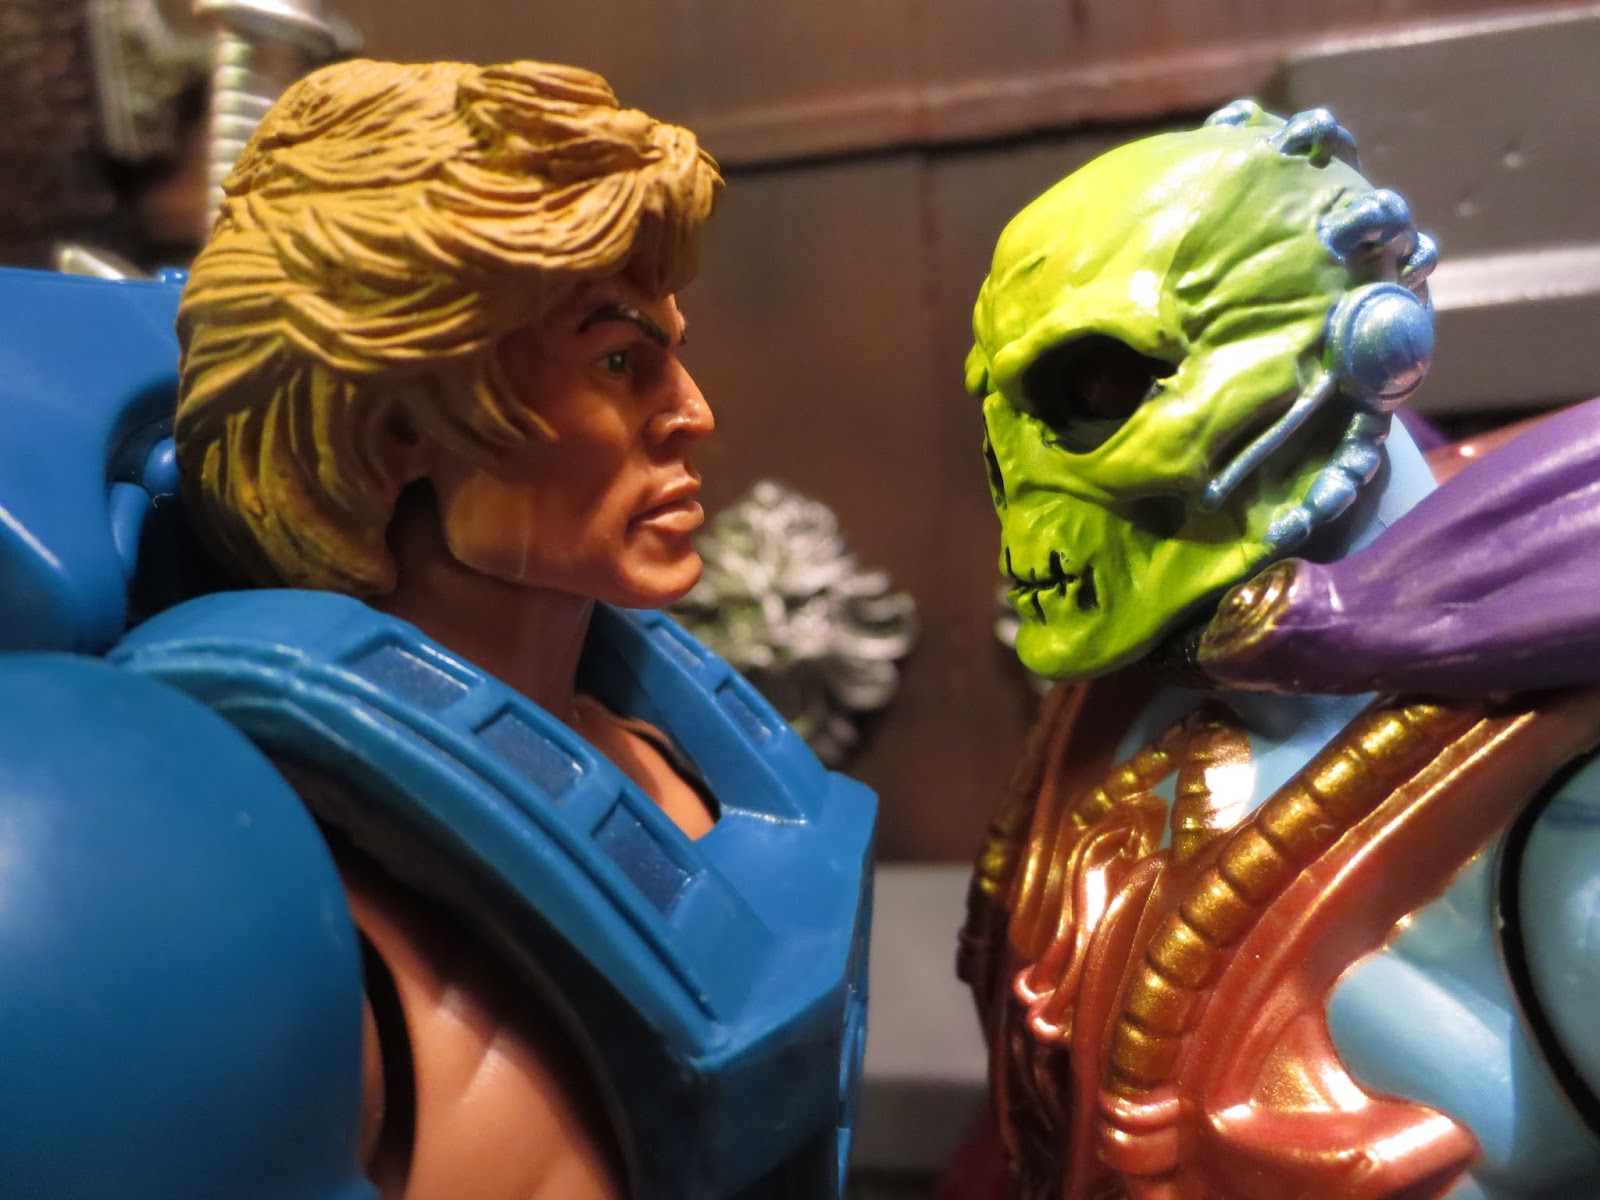 Action Figure Barbecue Action Figure Review Laser Power He Man Laser Light Skeletor From Masters Of The Universe Classics By Mattel I have the power, he, man, meme generator. action figure barbecue